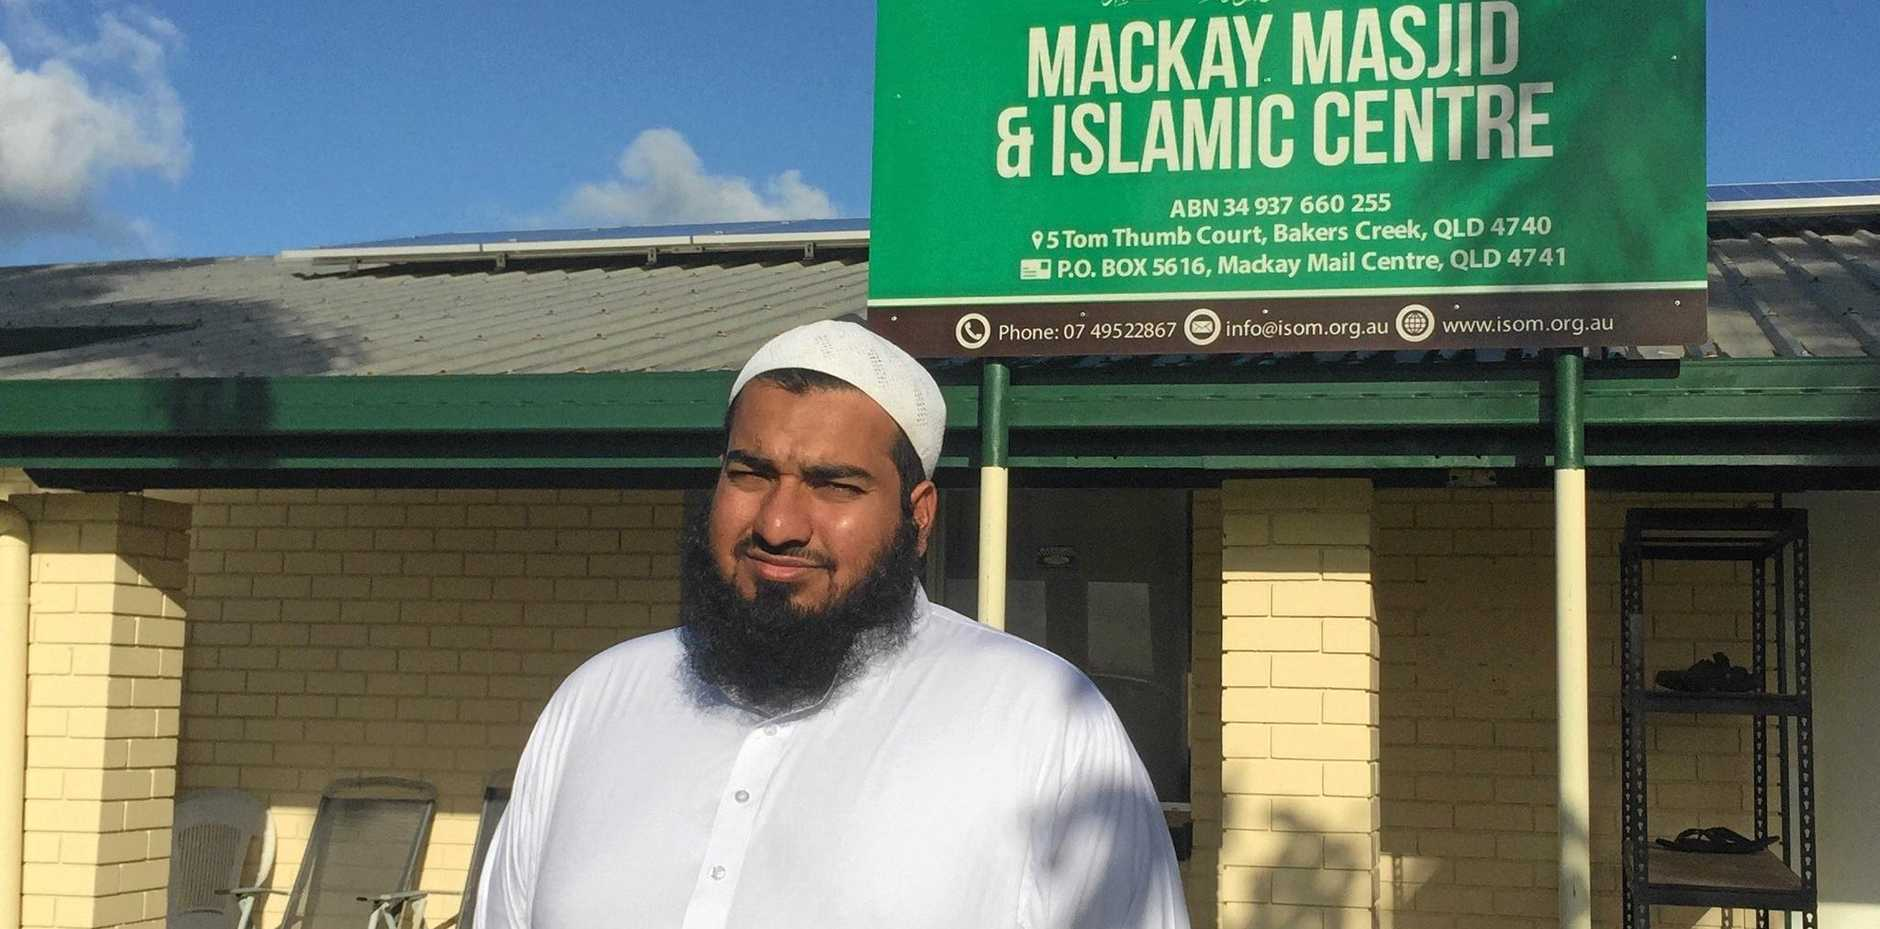 Islam: It's time to take action to combat misconceptions